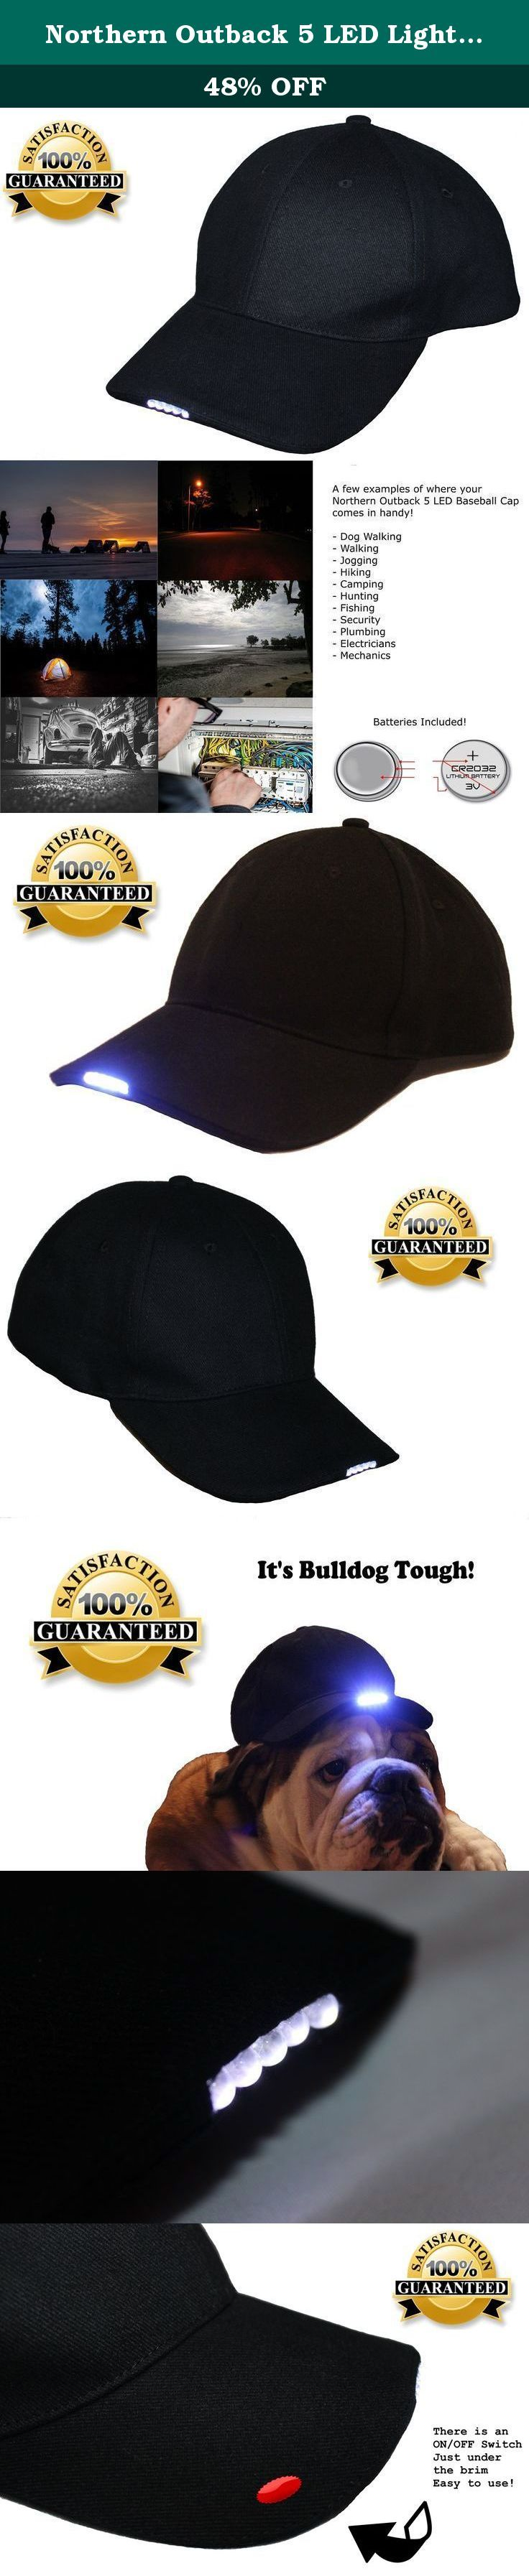 Northern Outback 5 LED Light Baseball Cap Hat - Best Hands Free Solution - Camping - Hiking - Walking - Jogging - Plumbing - Auto Mechanics - High Beam Lights - Batteries Included!. This 5 LED Baseball Cap is AMAZING! Hands free lighting everywhere you go! It's HANDY, LOOKS GREAT and what an EXCELLENT PRICE! Buy it for yourself or as a gift! What's so fantastic about our Baseball Cap? ✔ PRICE - Great quality at a low low price! ✔ STRONG - Fabricated by professionals! ✔ STYLISH - The Black...